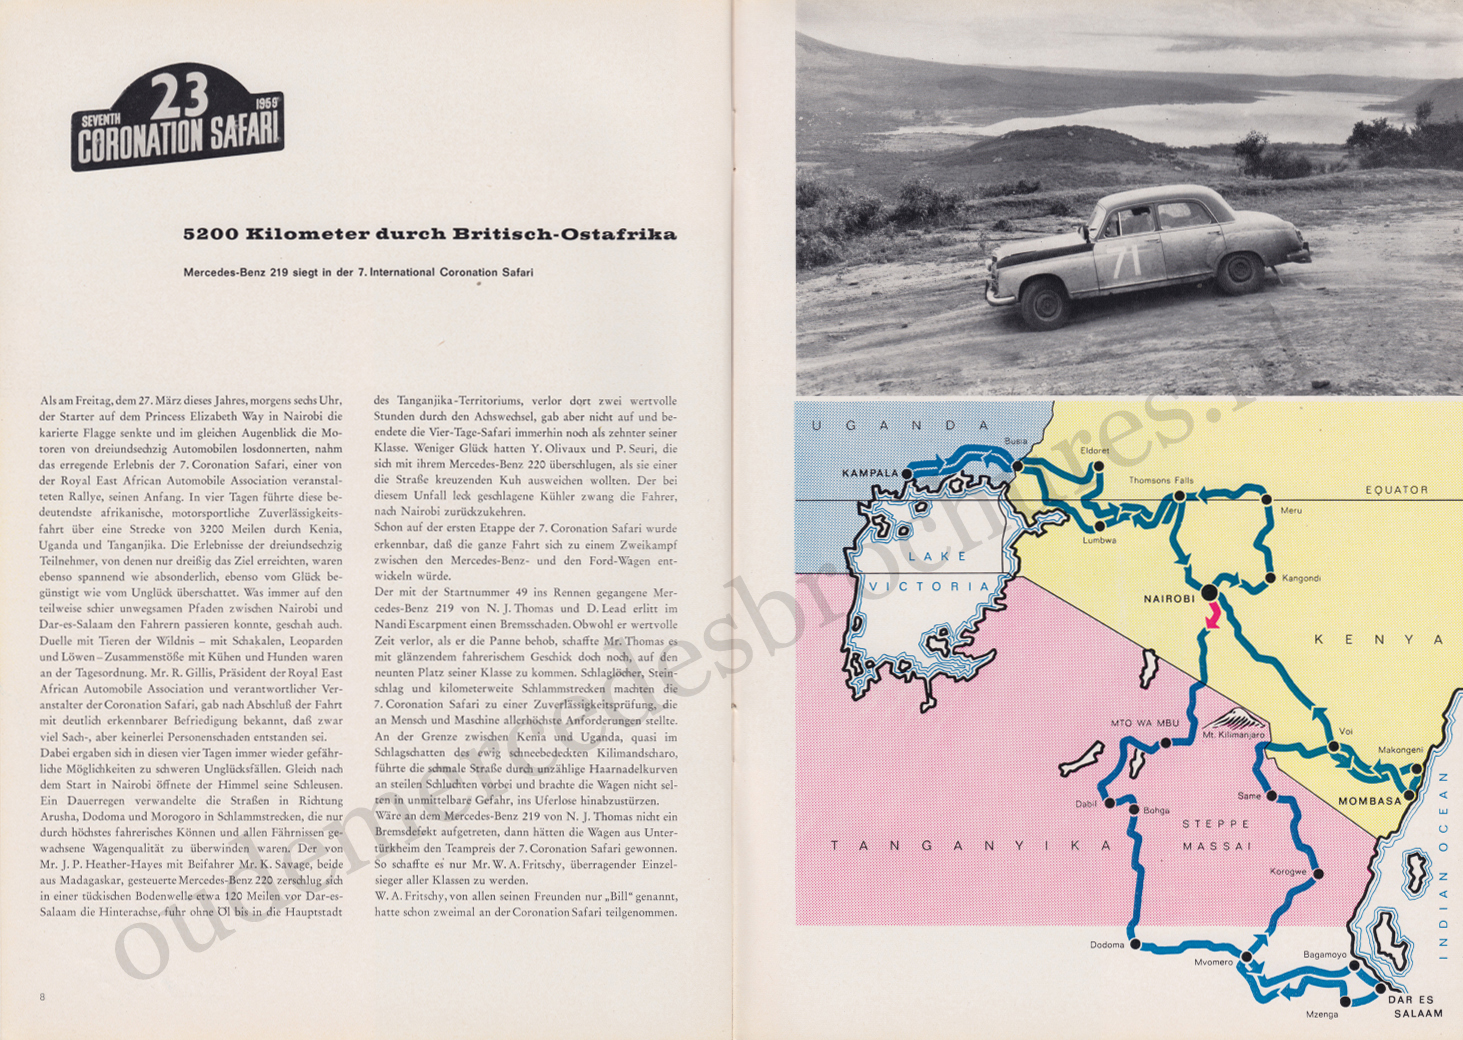 (REVISTA): Periódico In aller welt n.º 33 - Mercedes-Benz no mundo - 1959 - multilingue 005